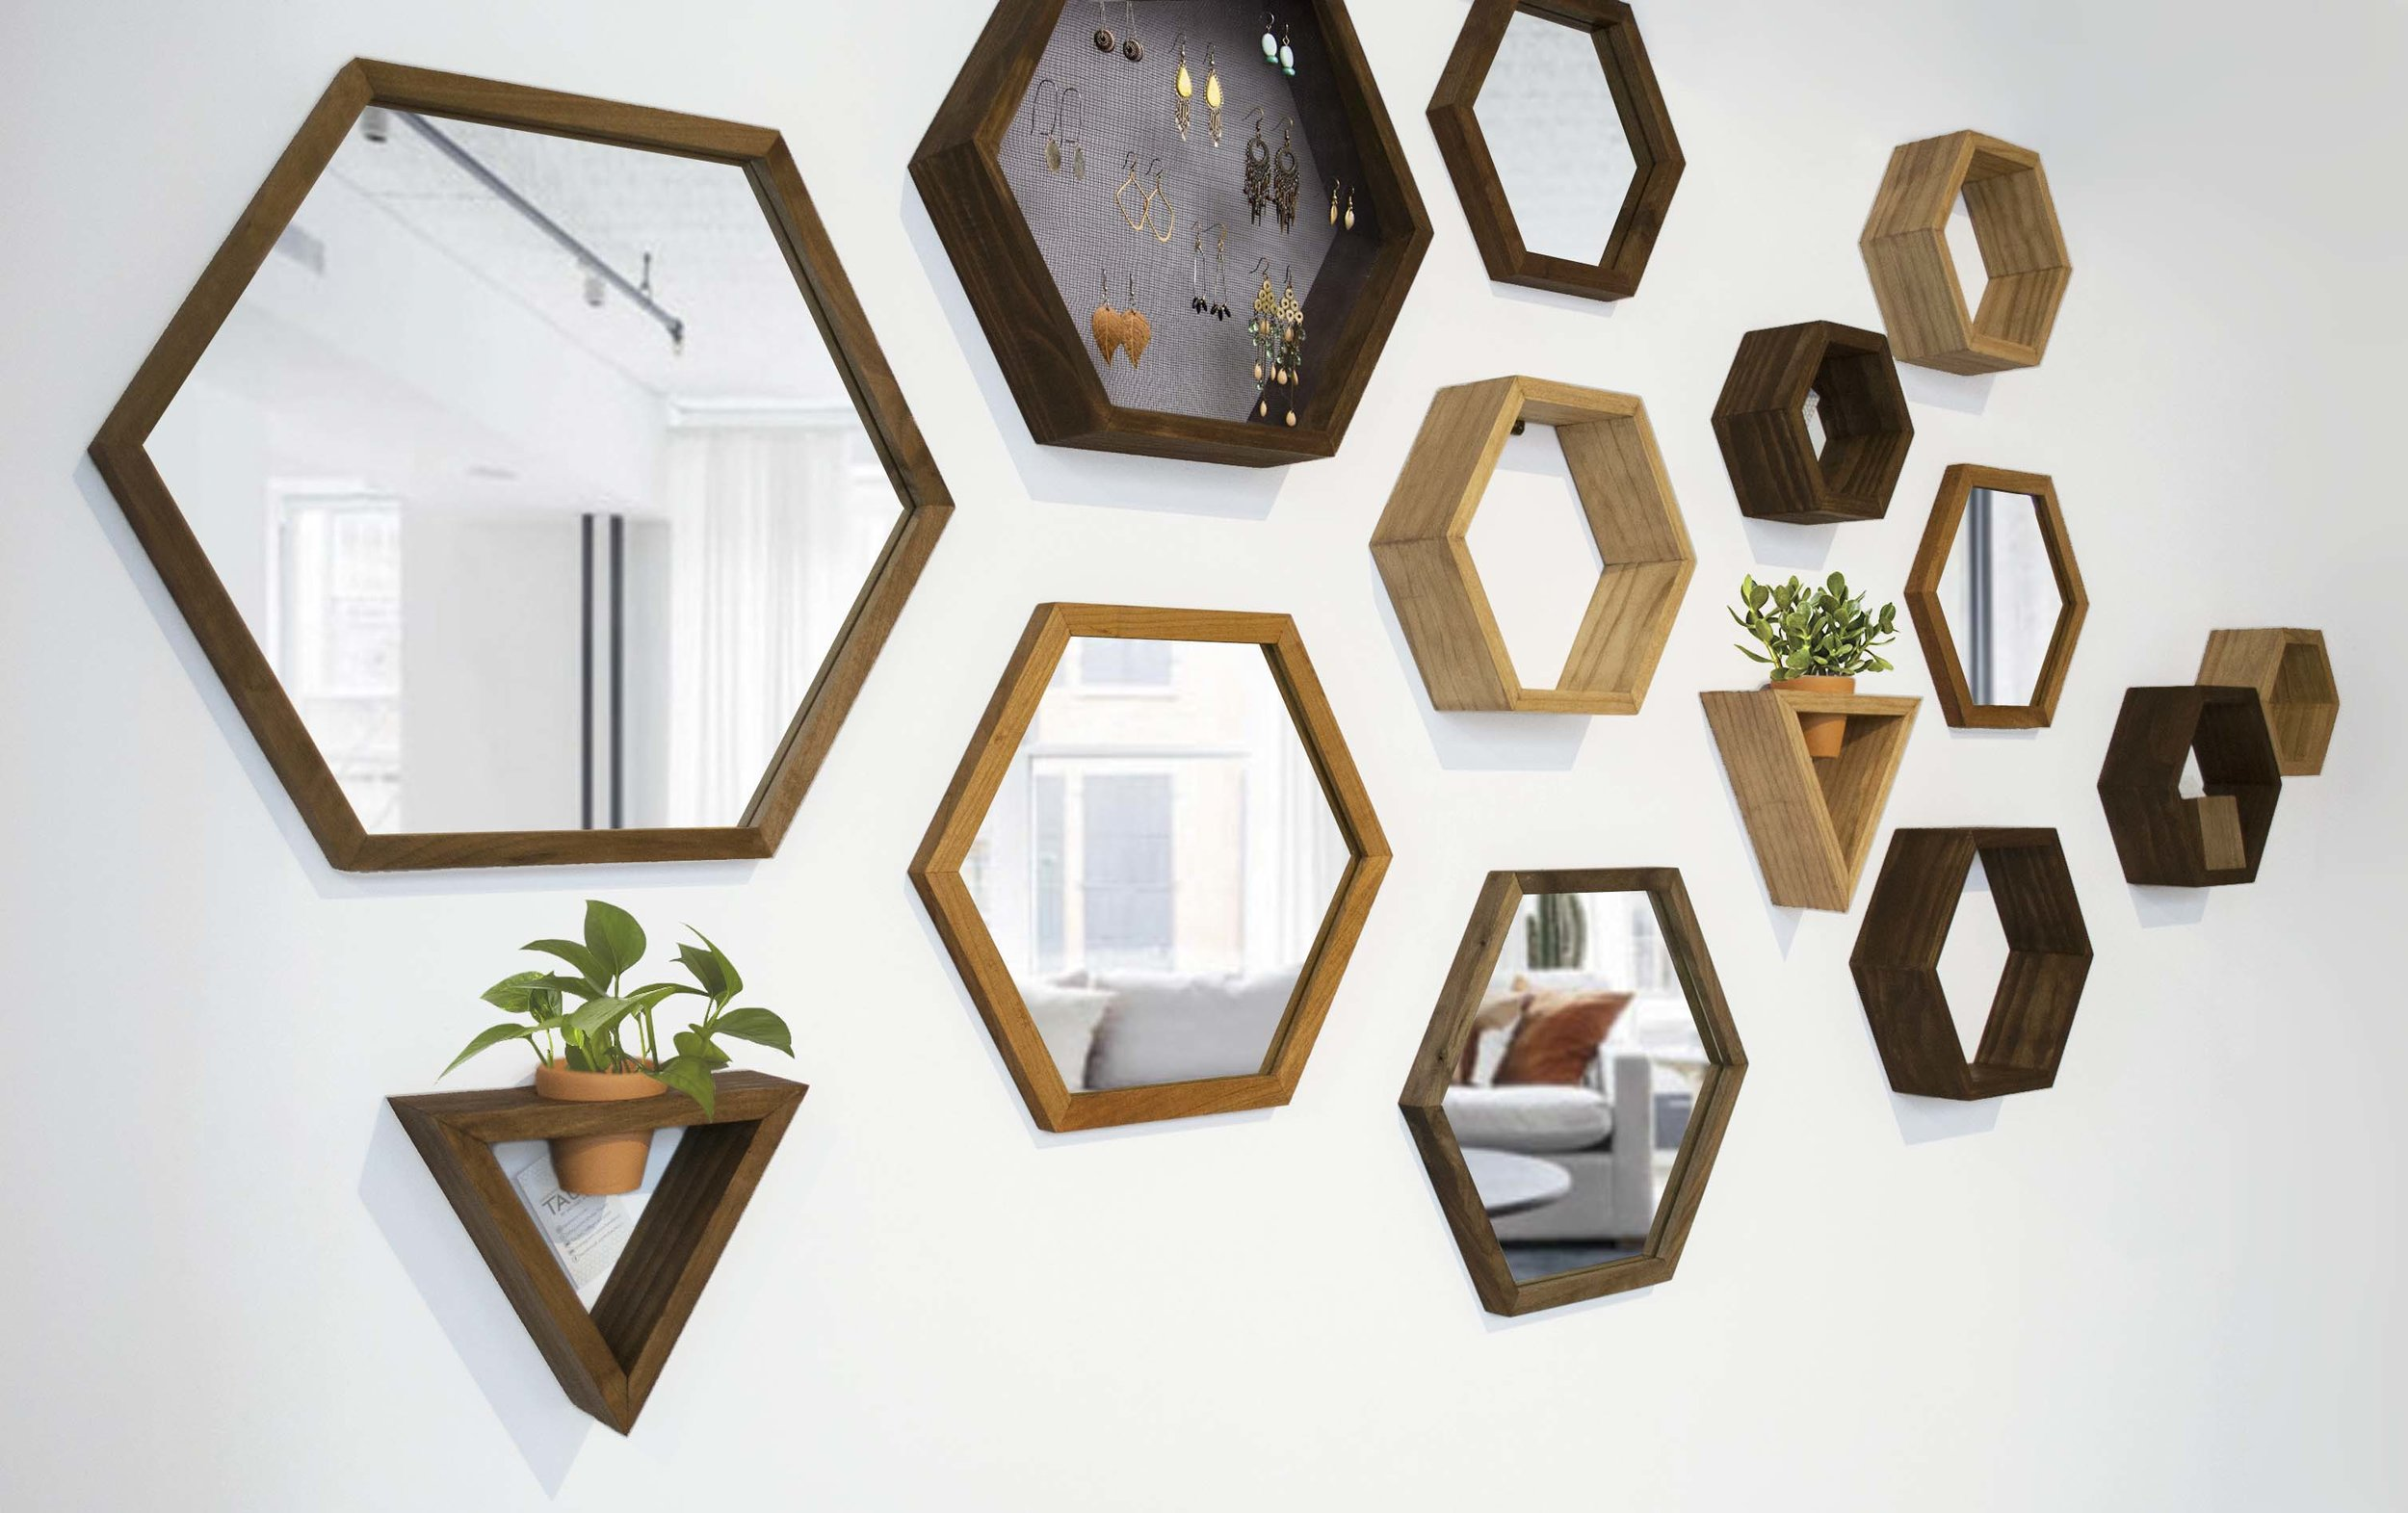 WallofHexagons_cropped.jpg